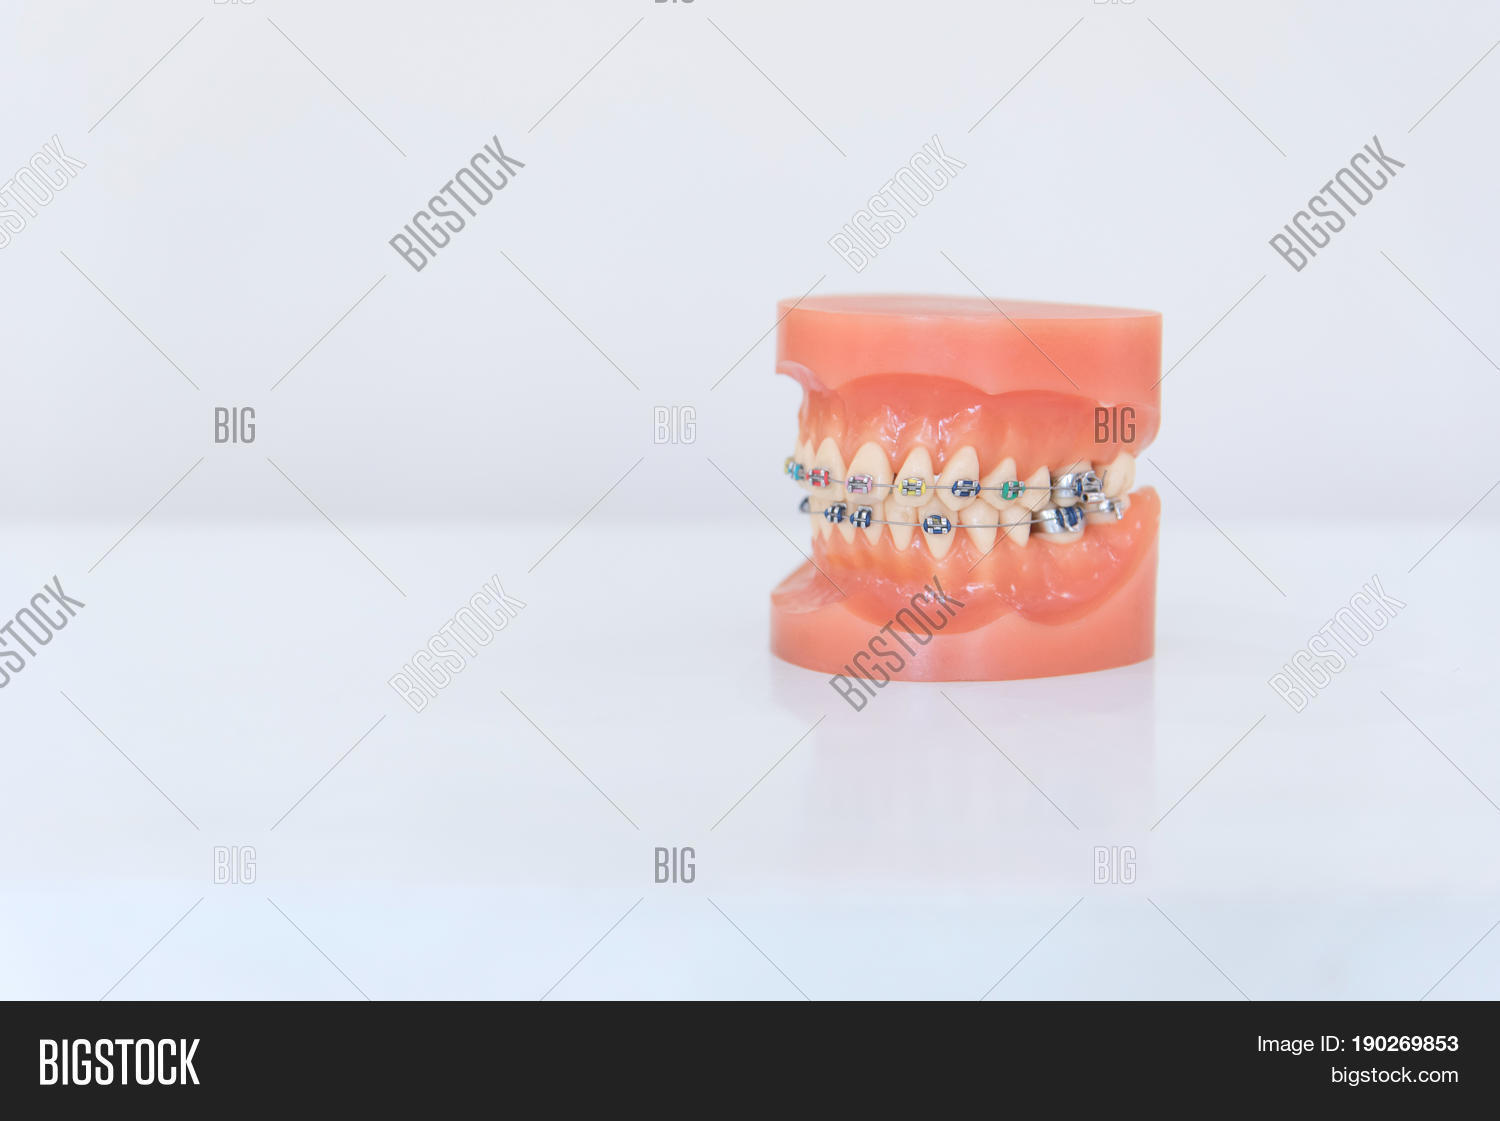 Artificial Model Human Jaw Wire Image & Photo | Bigstock